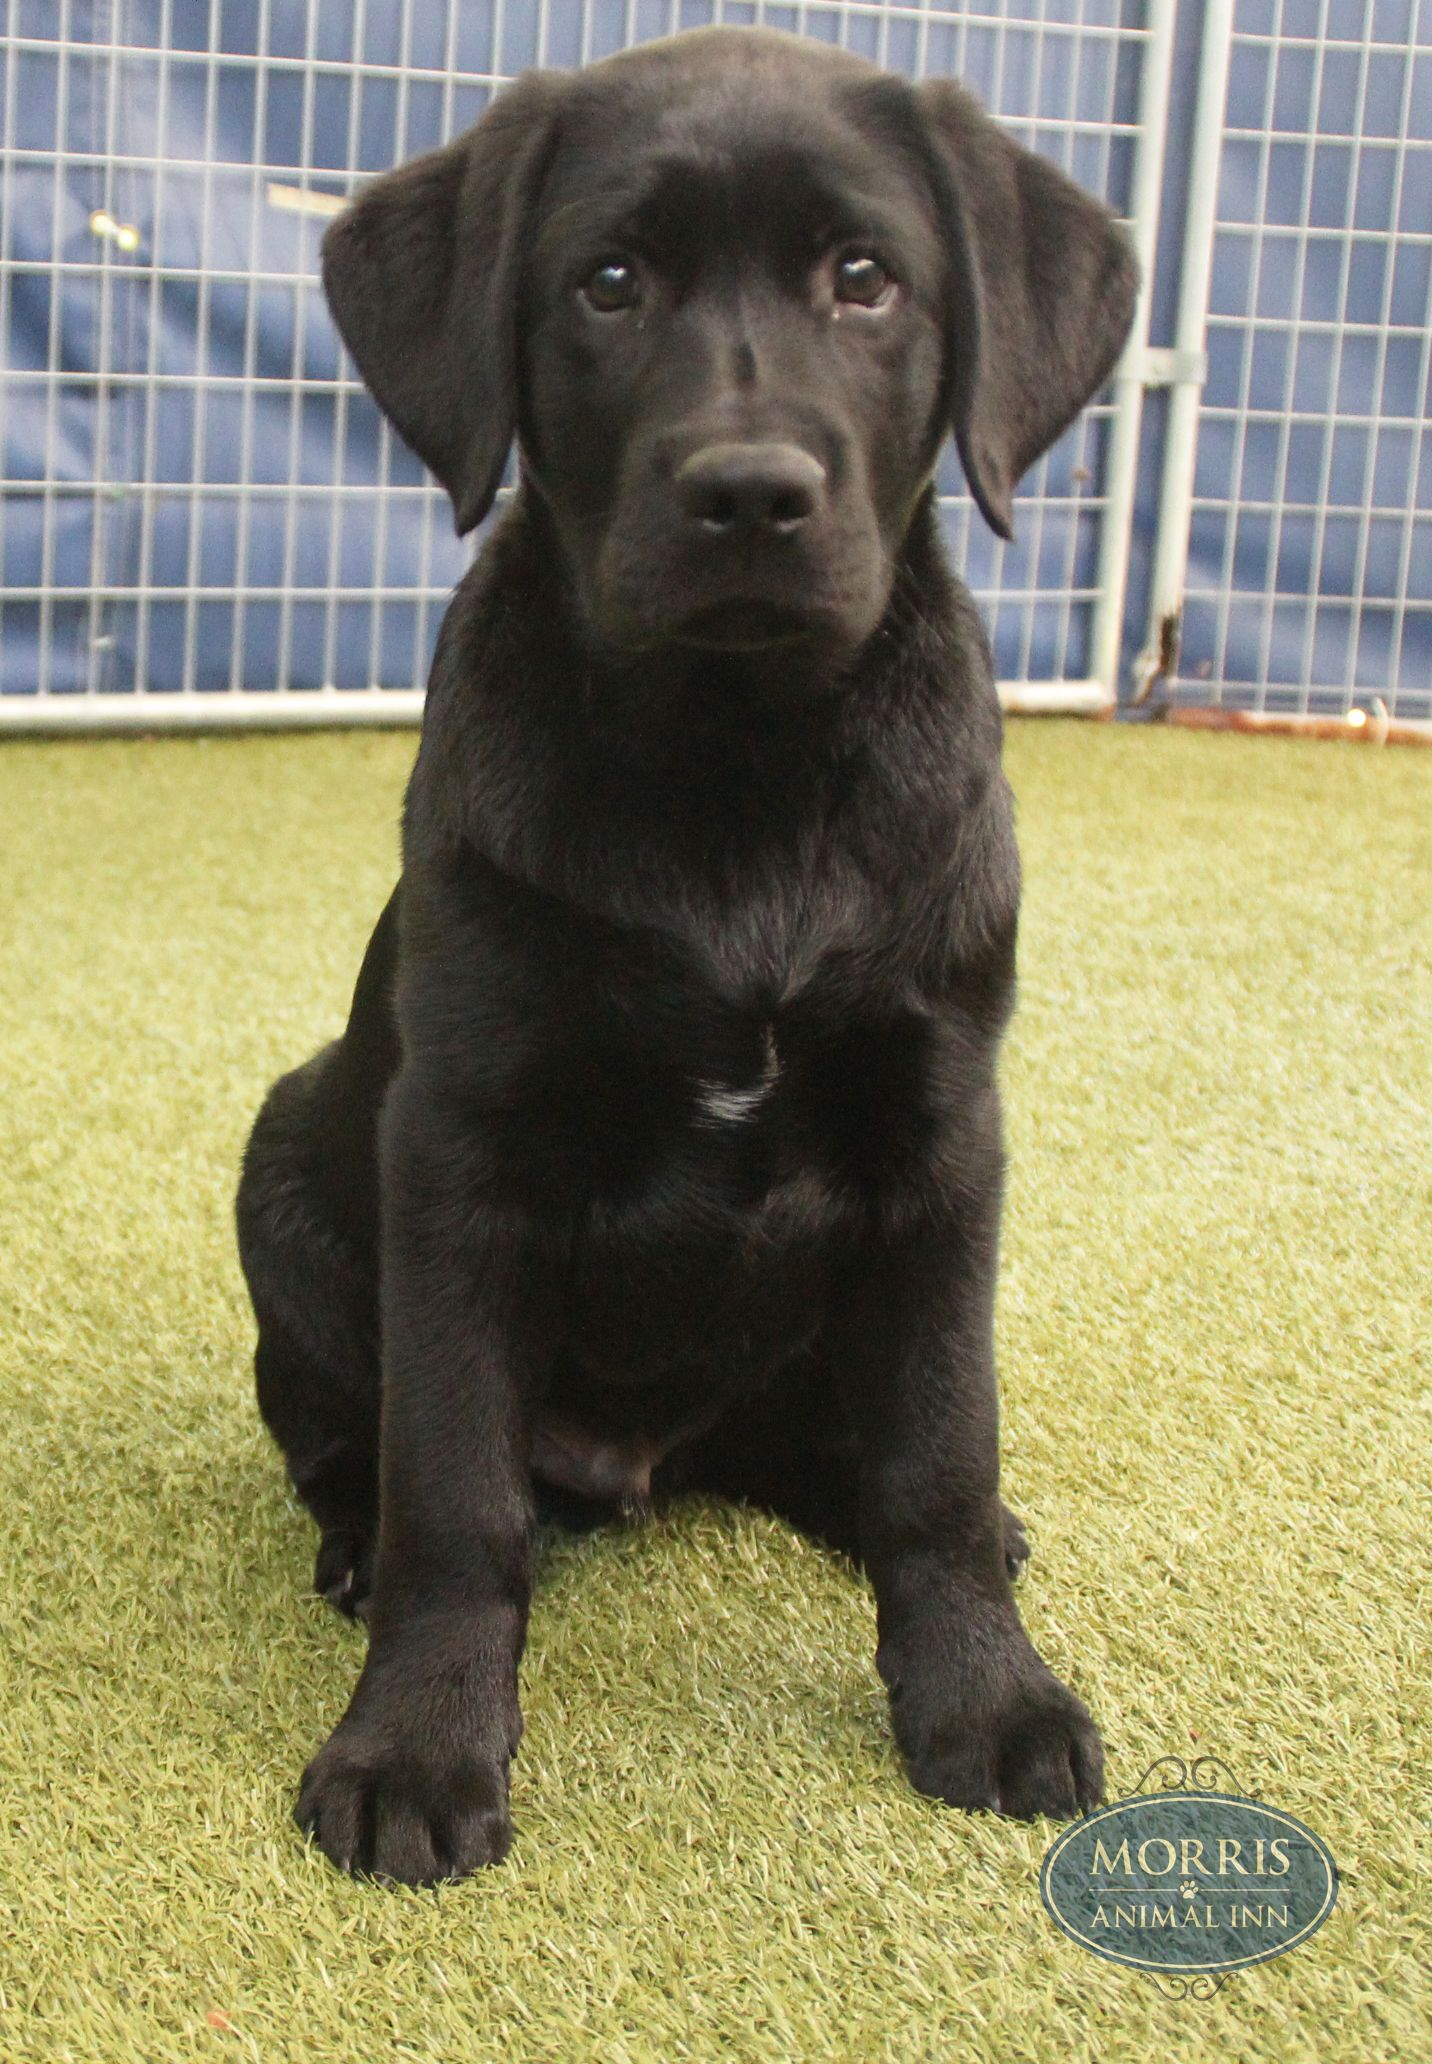 Moses A 3 Month Old Black Labrador Loves To Attend Puppy Daycare